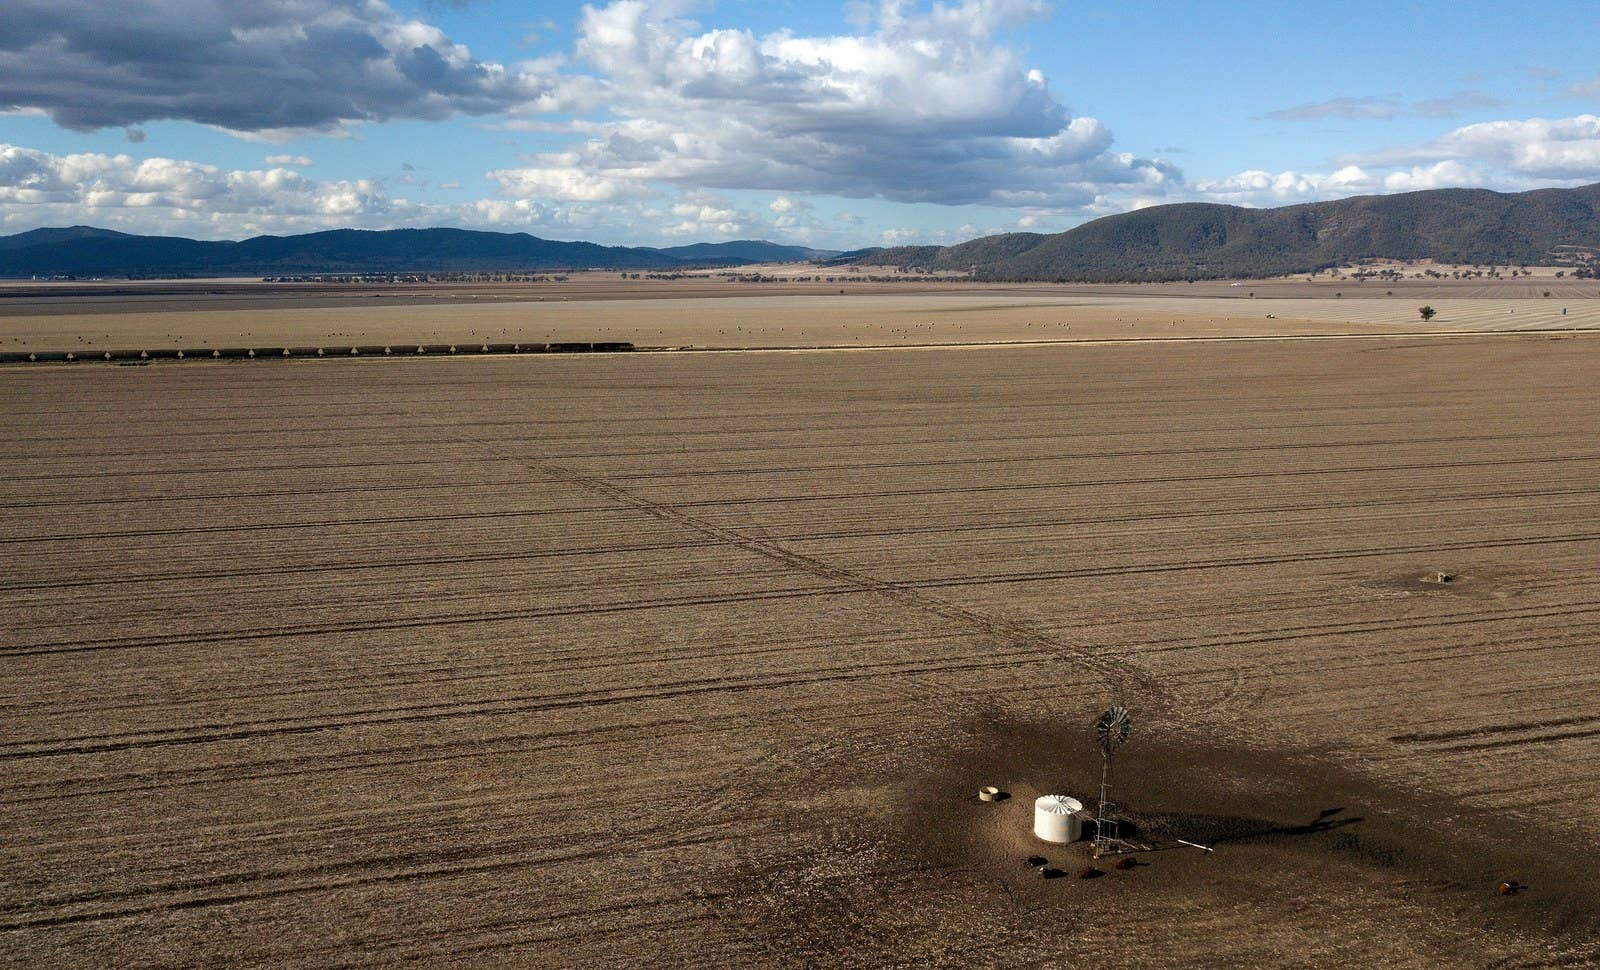 A train makes its way through dry paddocks in the drought-hit area of Quirindi in New South Wales, Australia.